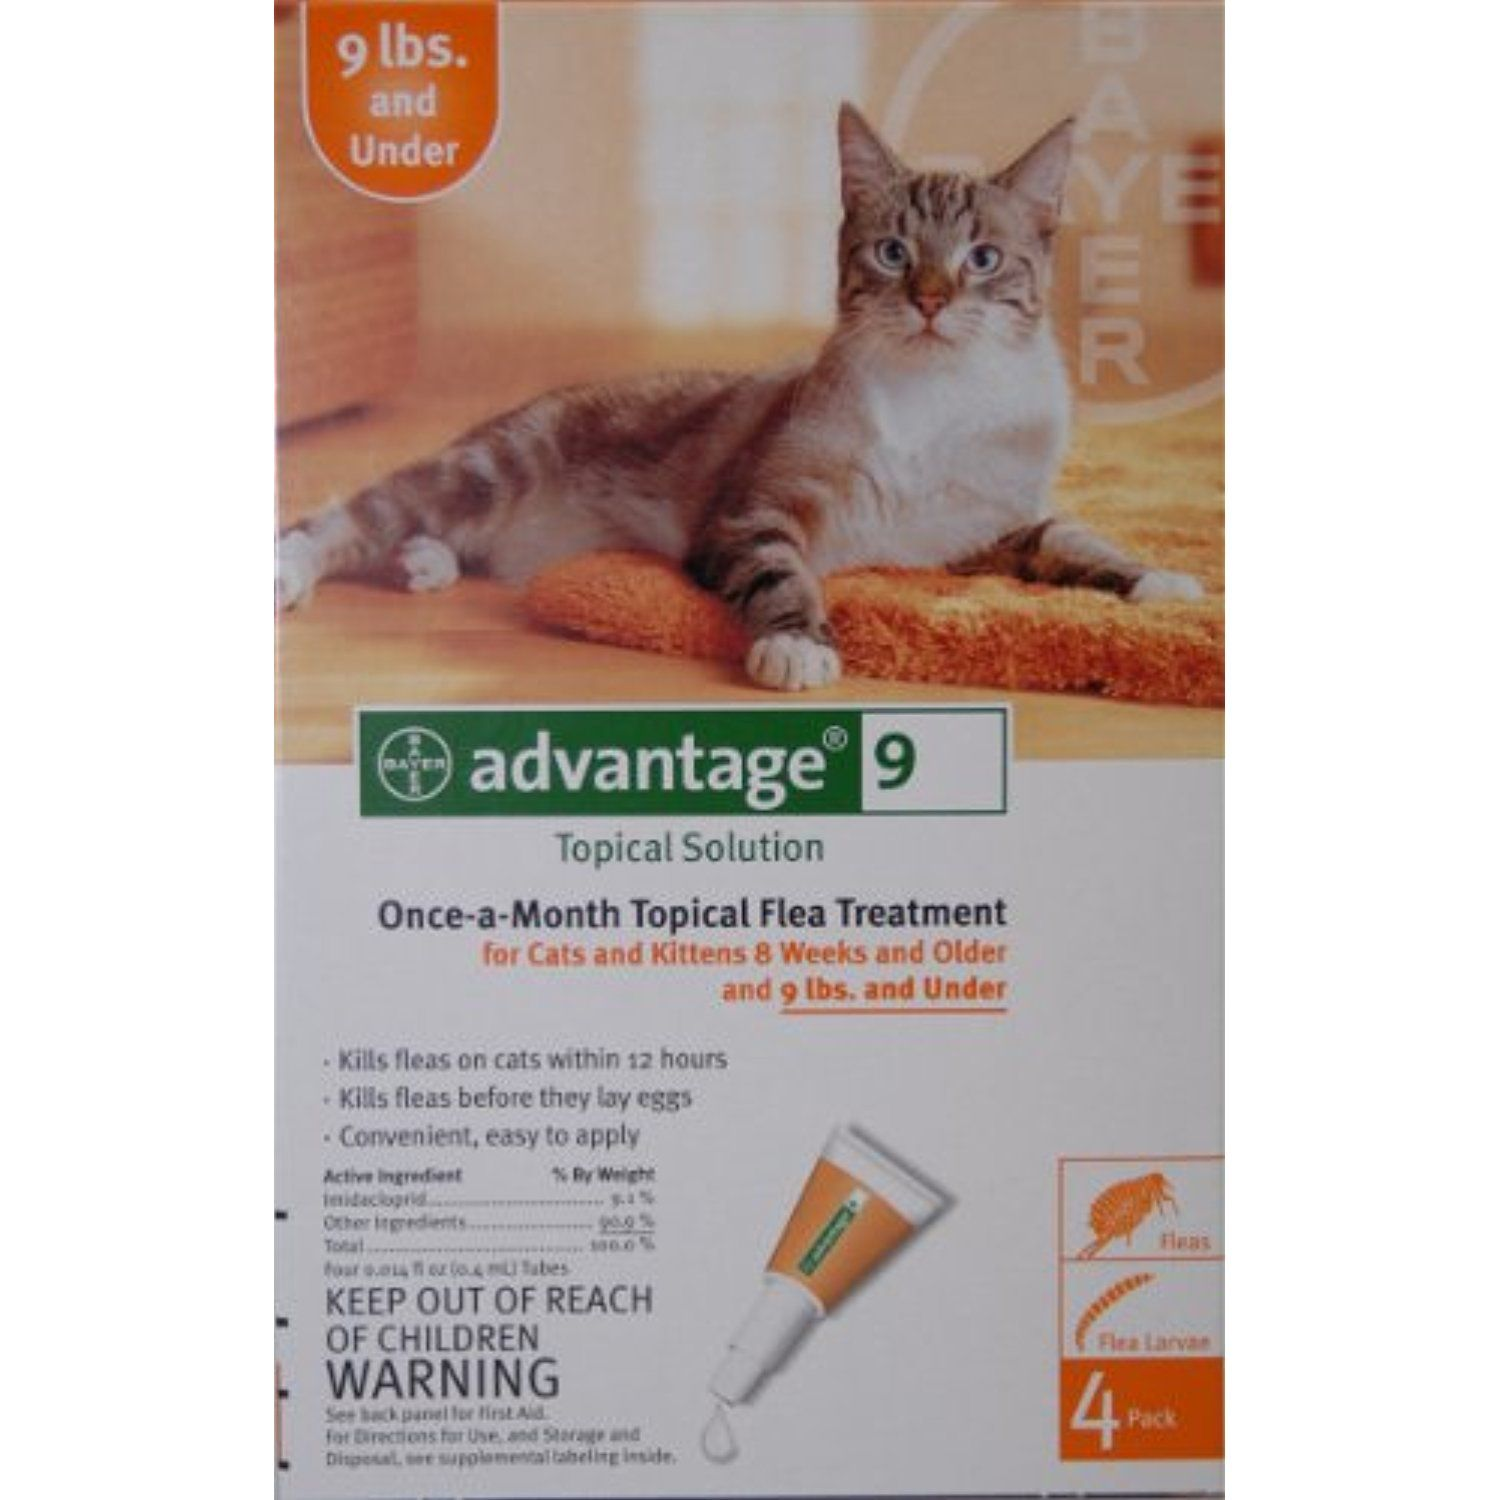 Advantage Cat Orange Under 9 Lbs By Advantage Be Sure To Check Out This Awesome Product This Is An Affiliate Li Cats And Kittens Cats Cat Medication